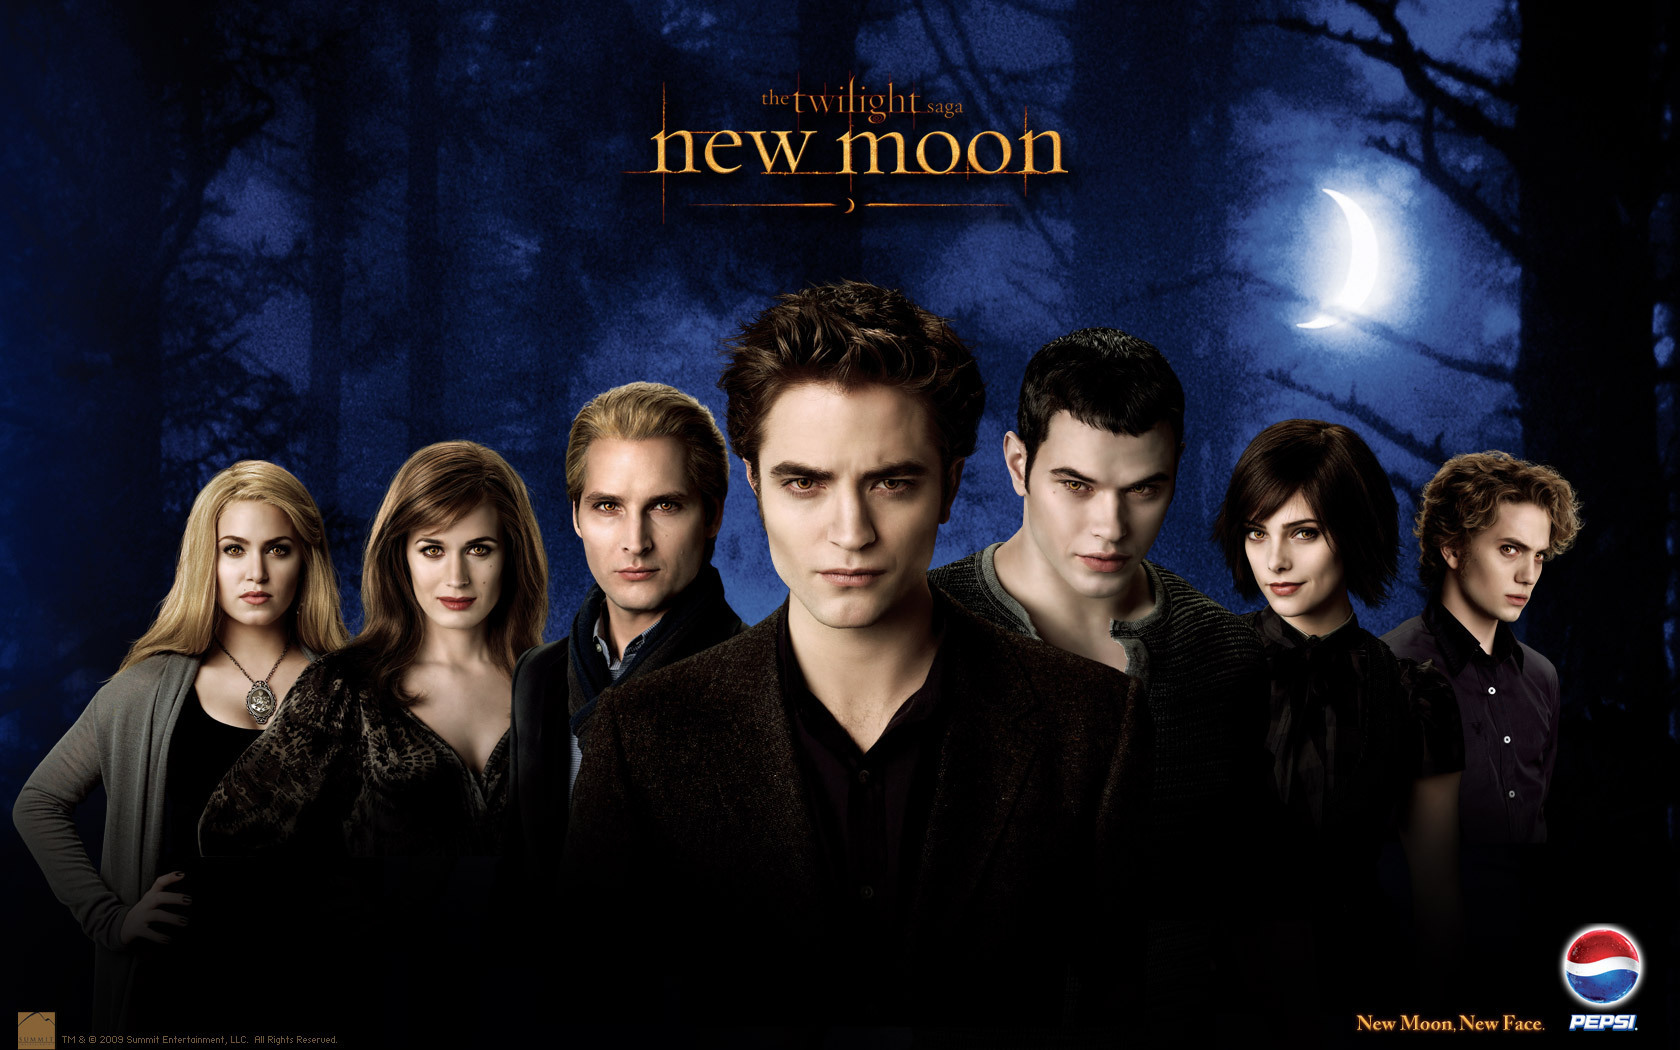 PEPSI Italy New Moon Twilight - PEPSI Italy New Moon Twilight